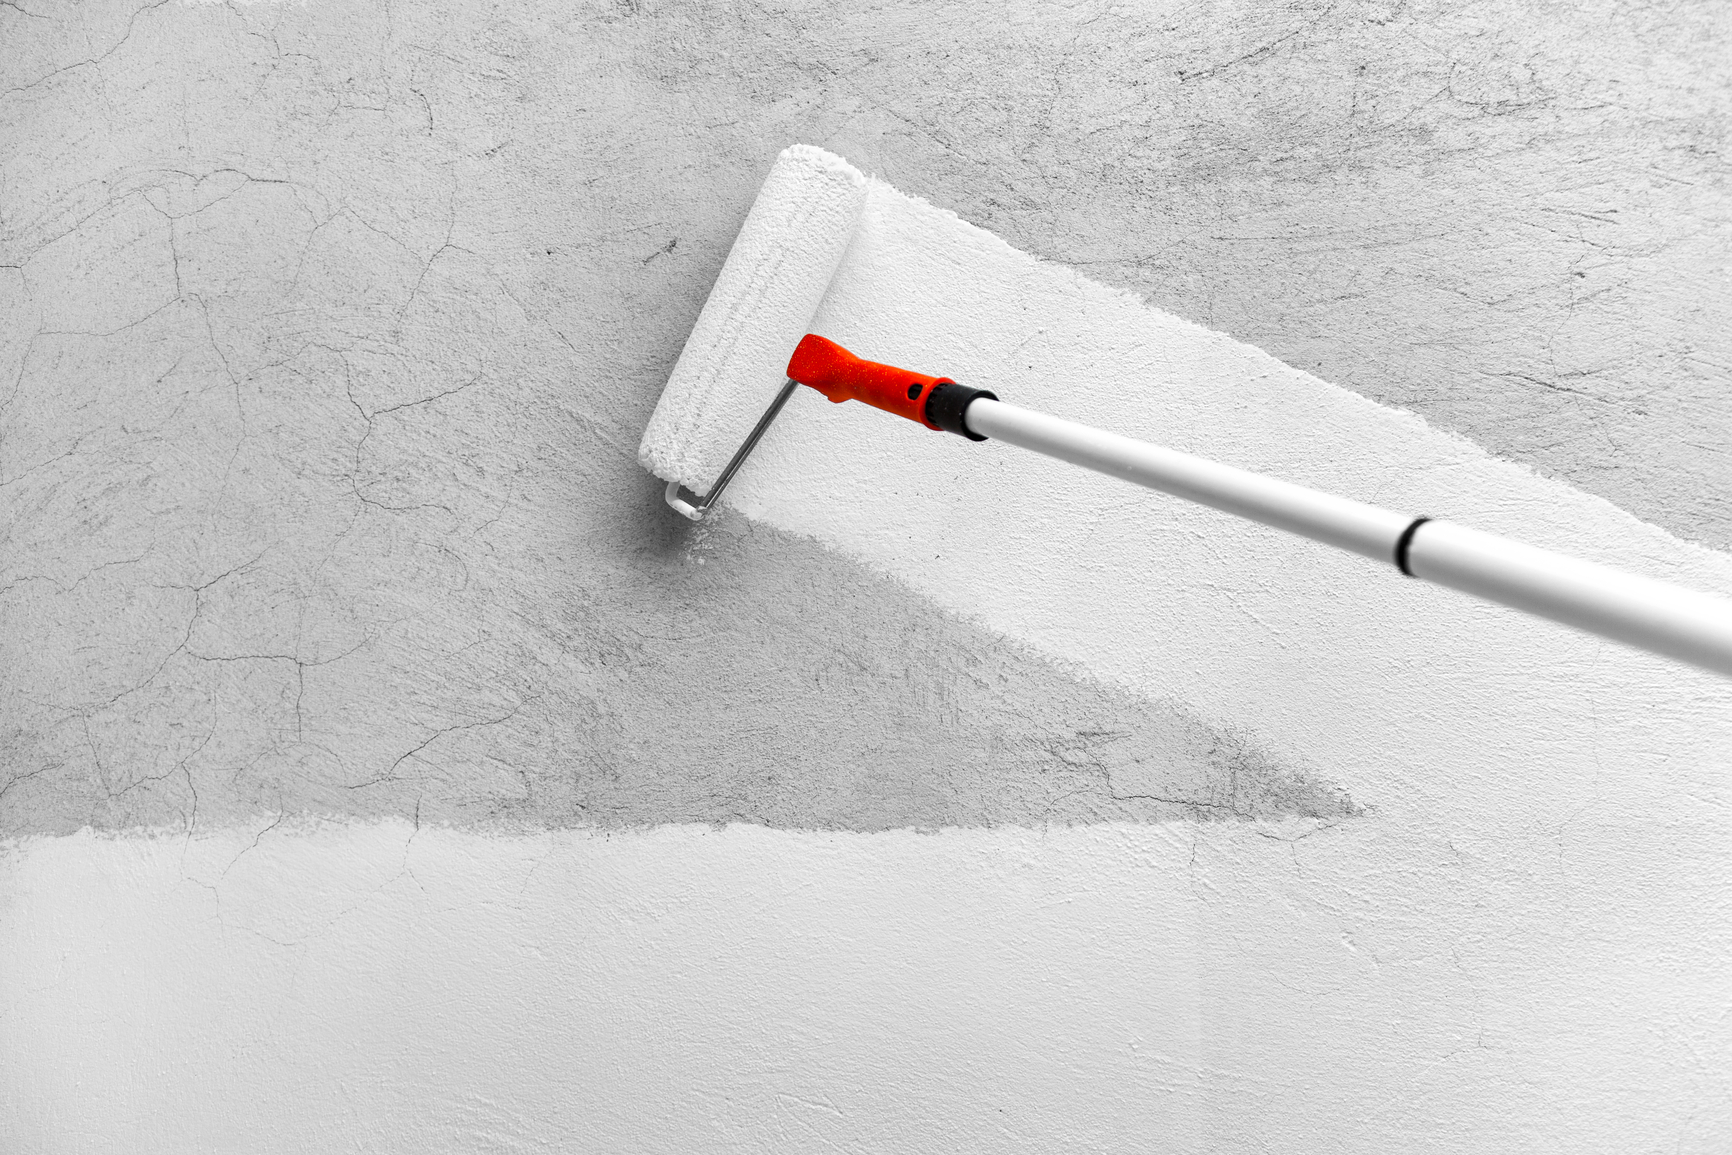 paint roller paints a rough wall in white latex paint. Black Bedroom Furniture Sets. Home Design Ideas